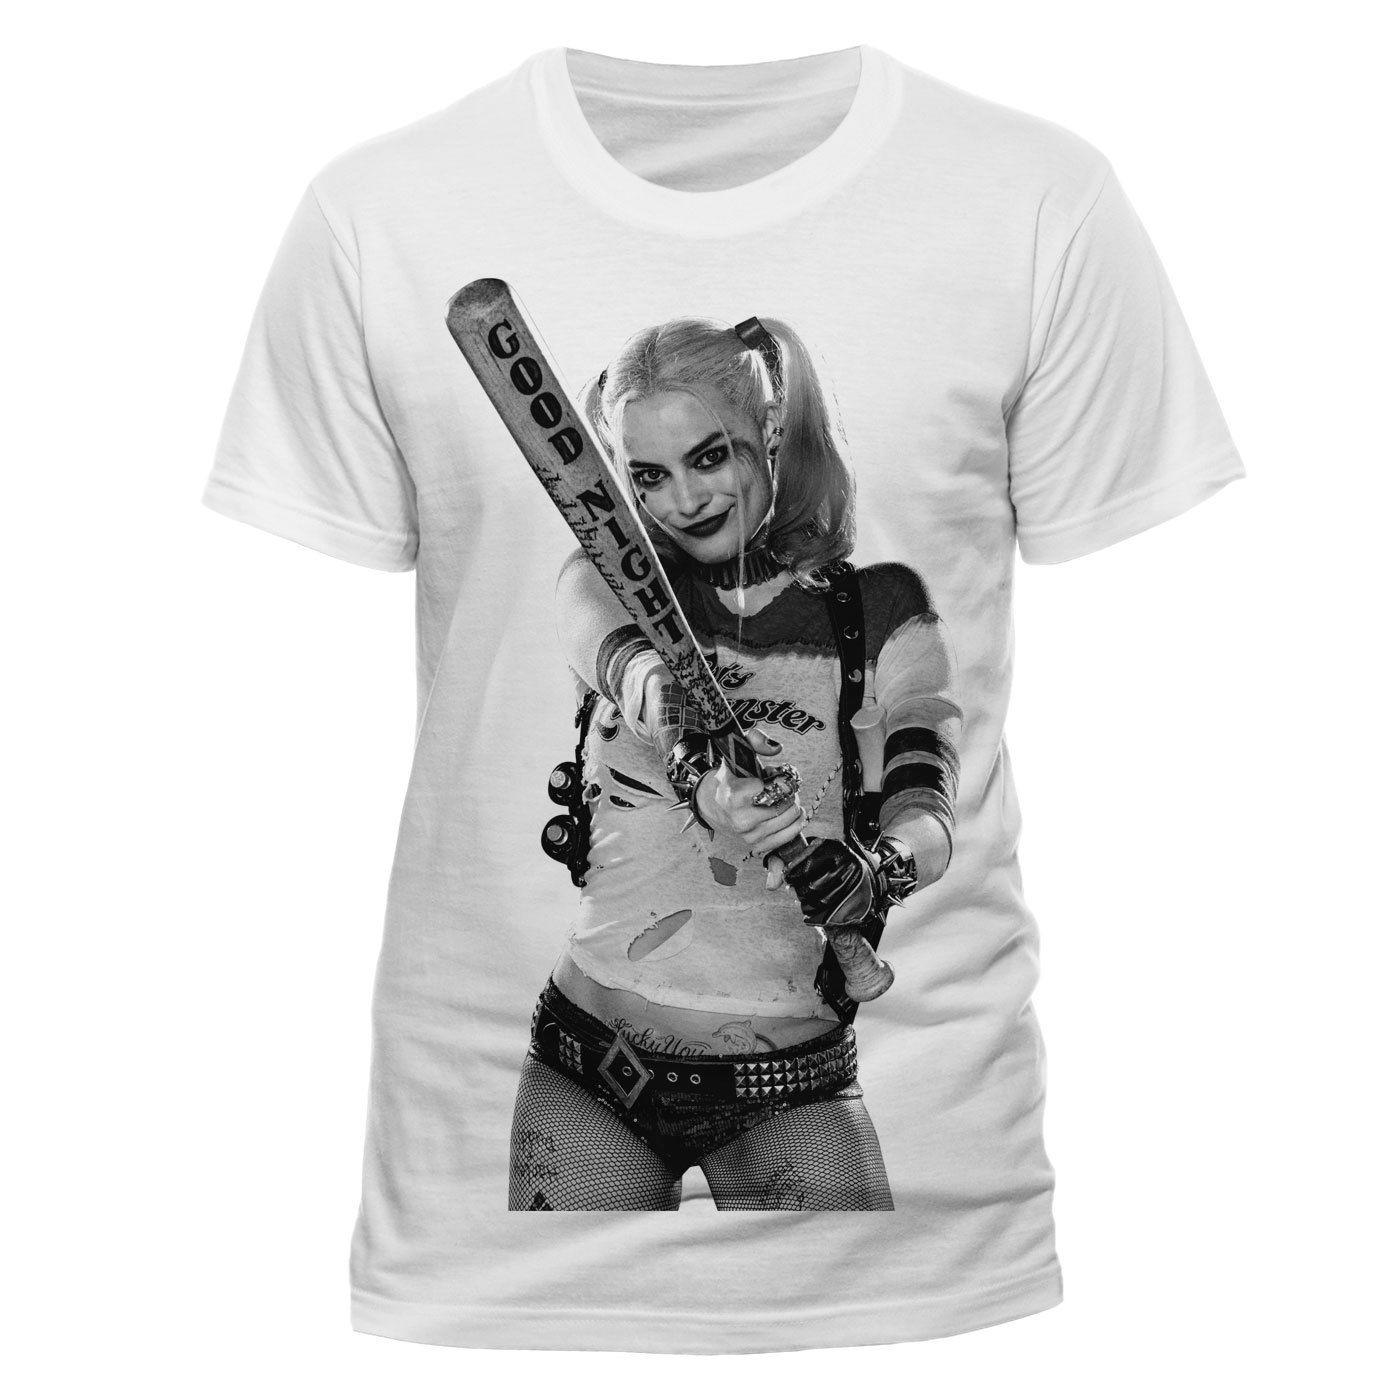 ee6ec794696f Official Suicide Squad Harley Quinn Bat T Shirt DC Comics Small XX Large  Cool Casual Pride T Shirt Men Crazy Shirt Designs A Shirt A Day From  Cls6688523, ...